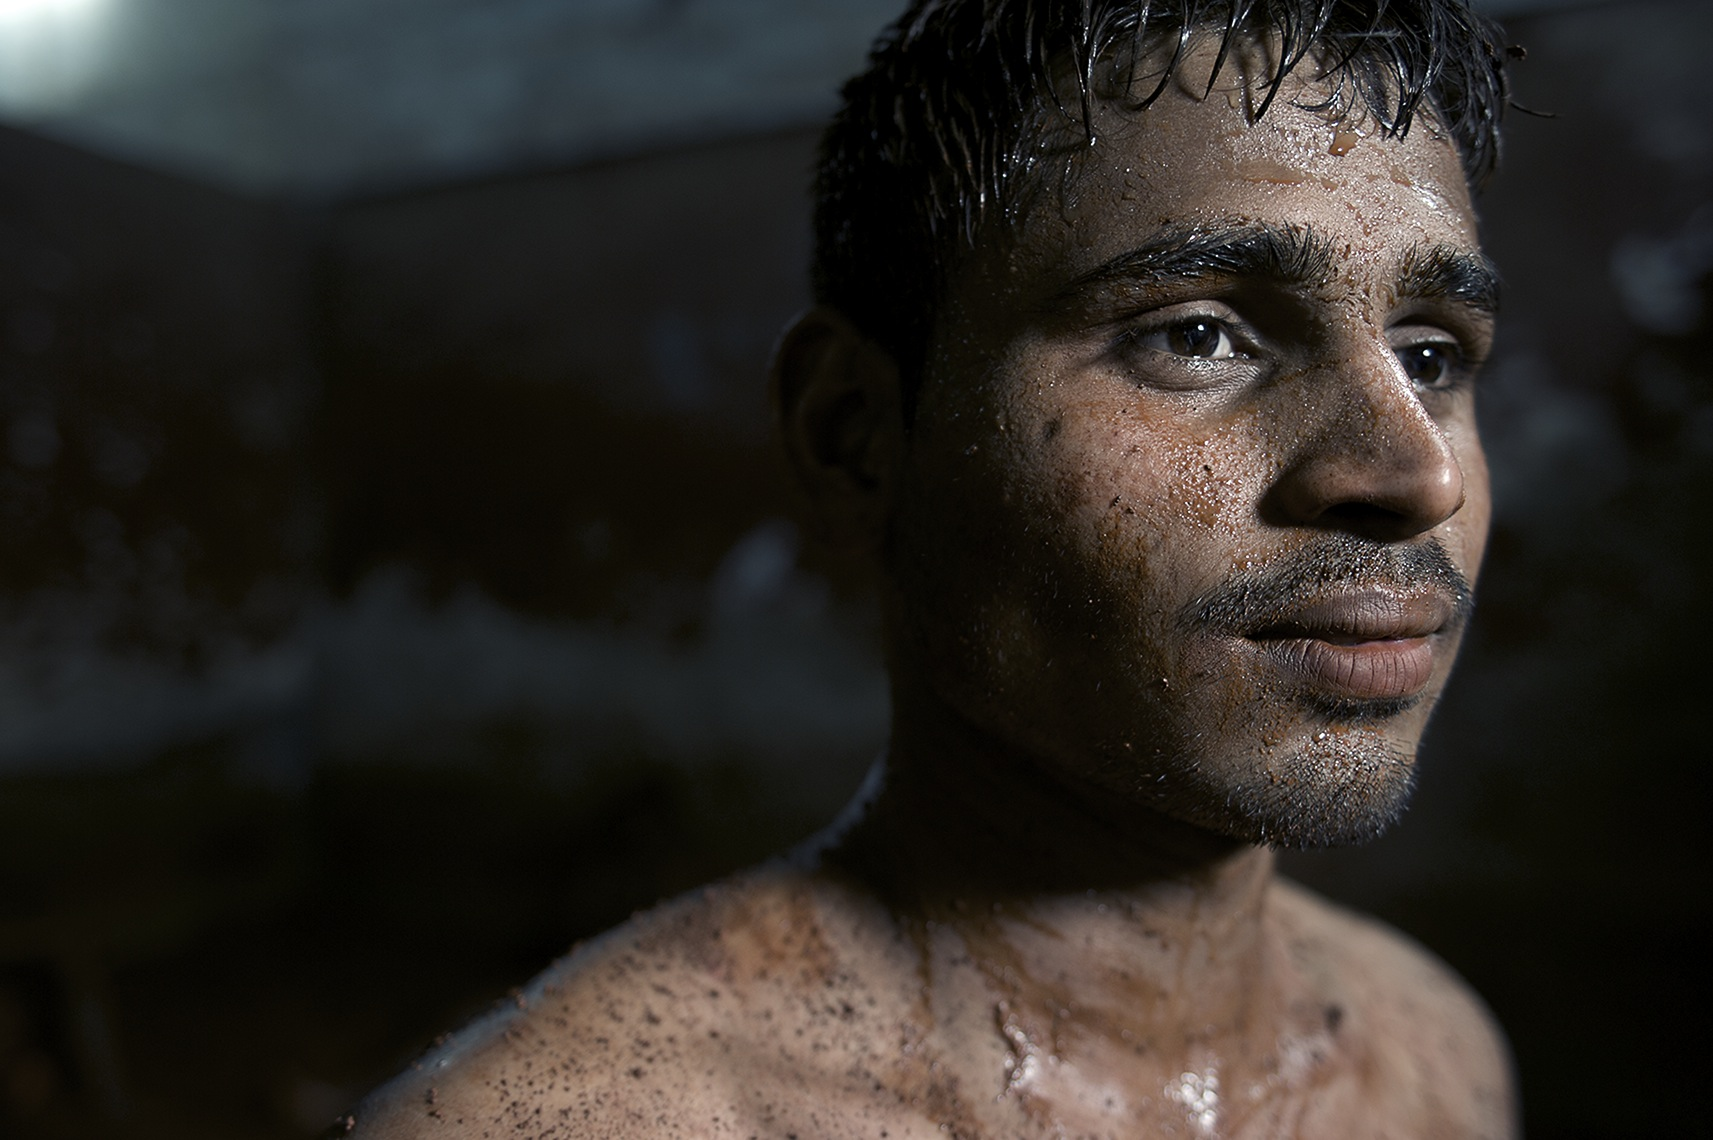 Kushti wrestler India